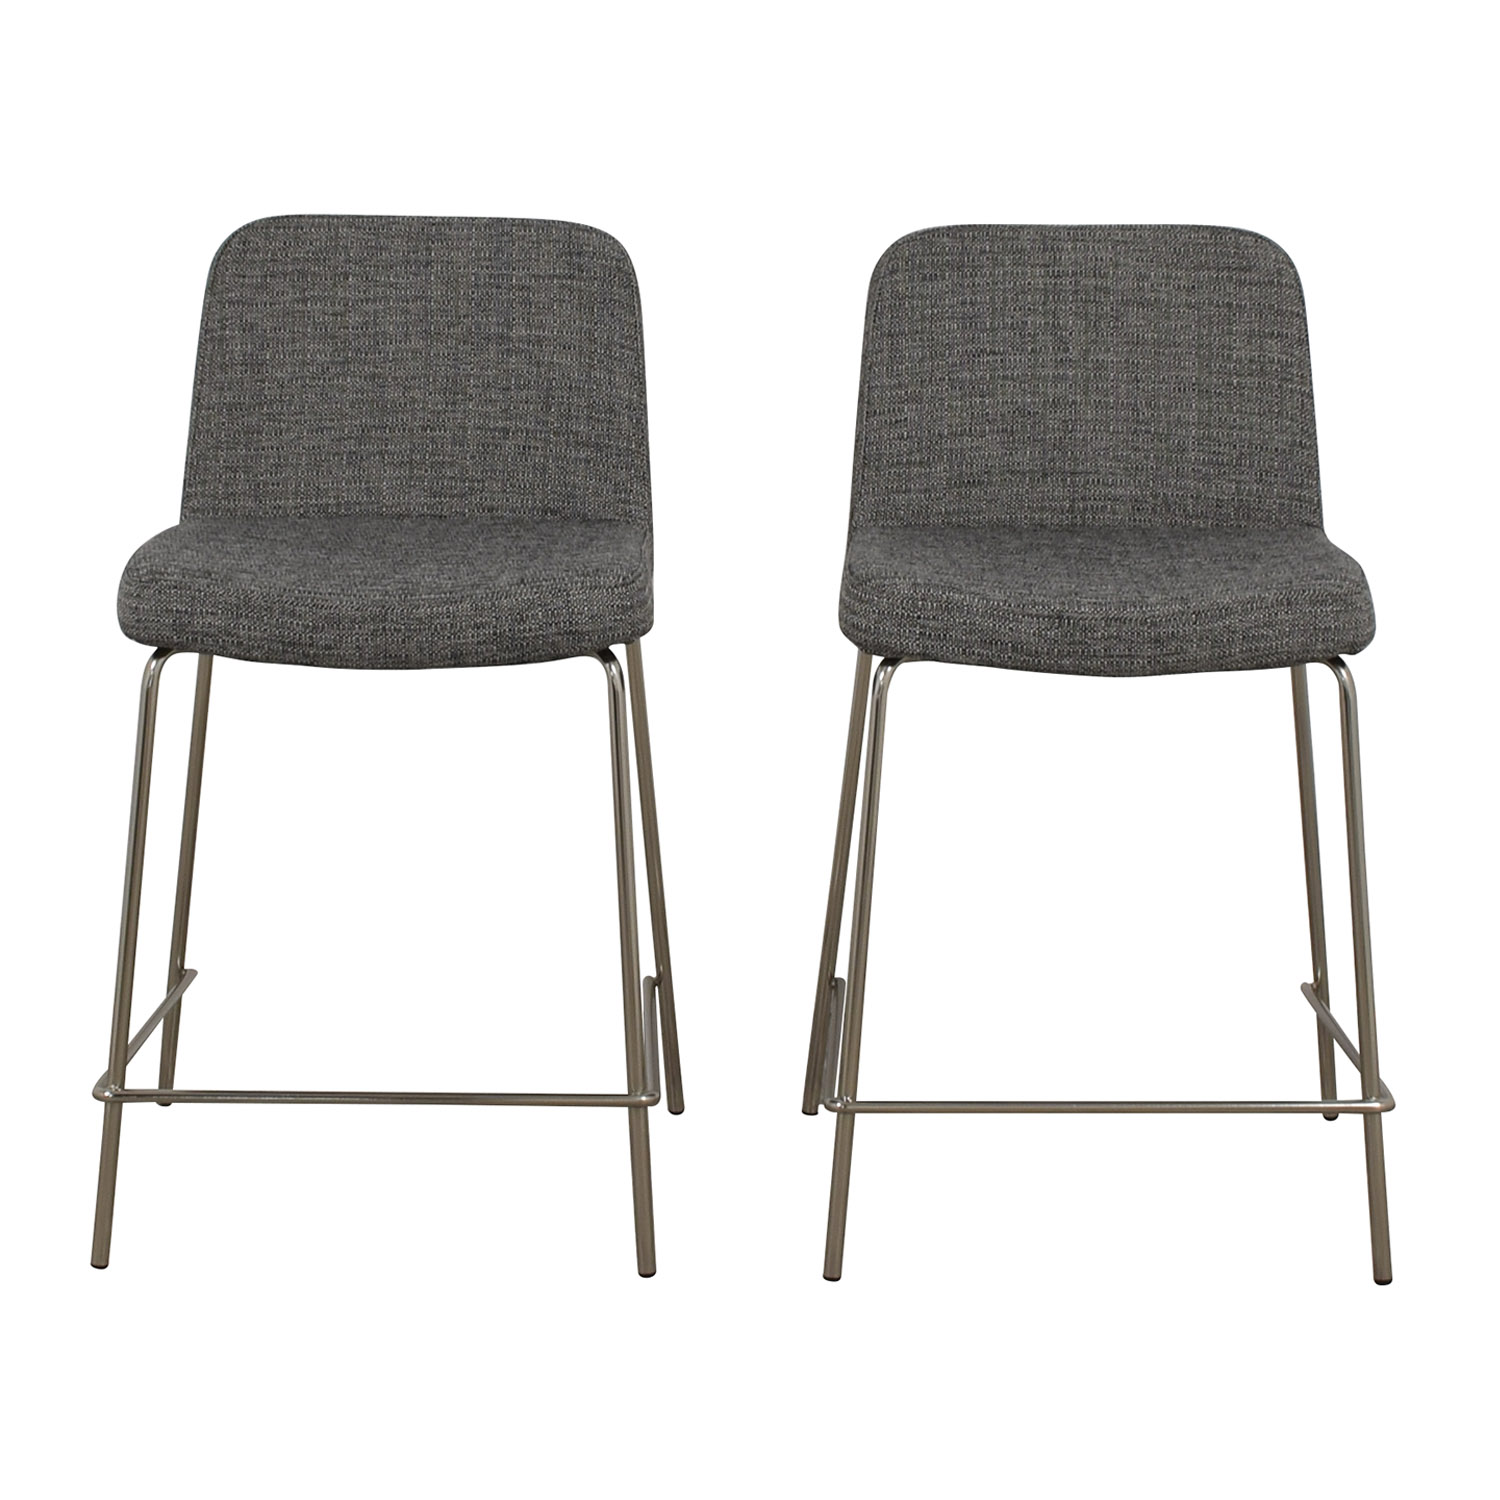 CB2 CB2 Charlie Counter Gray Stools Chairs